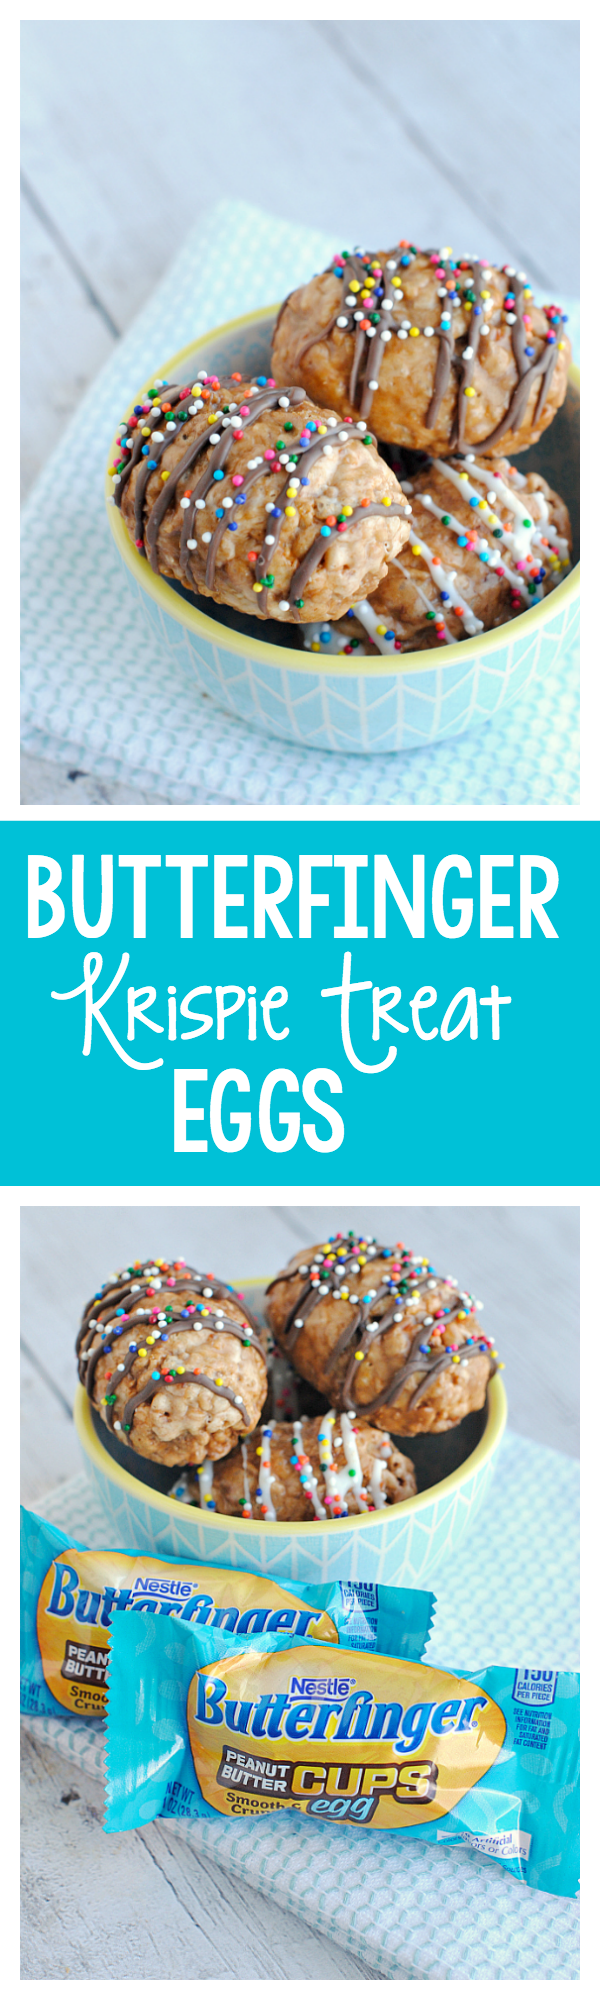 Amazing Butterfinger Krispie Treat Eggs